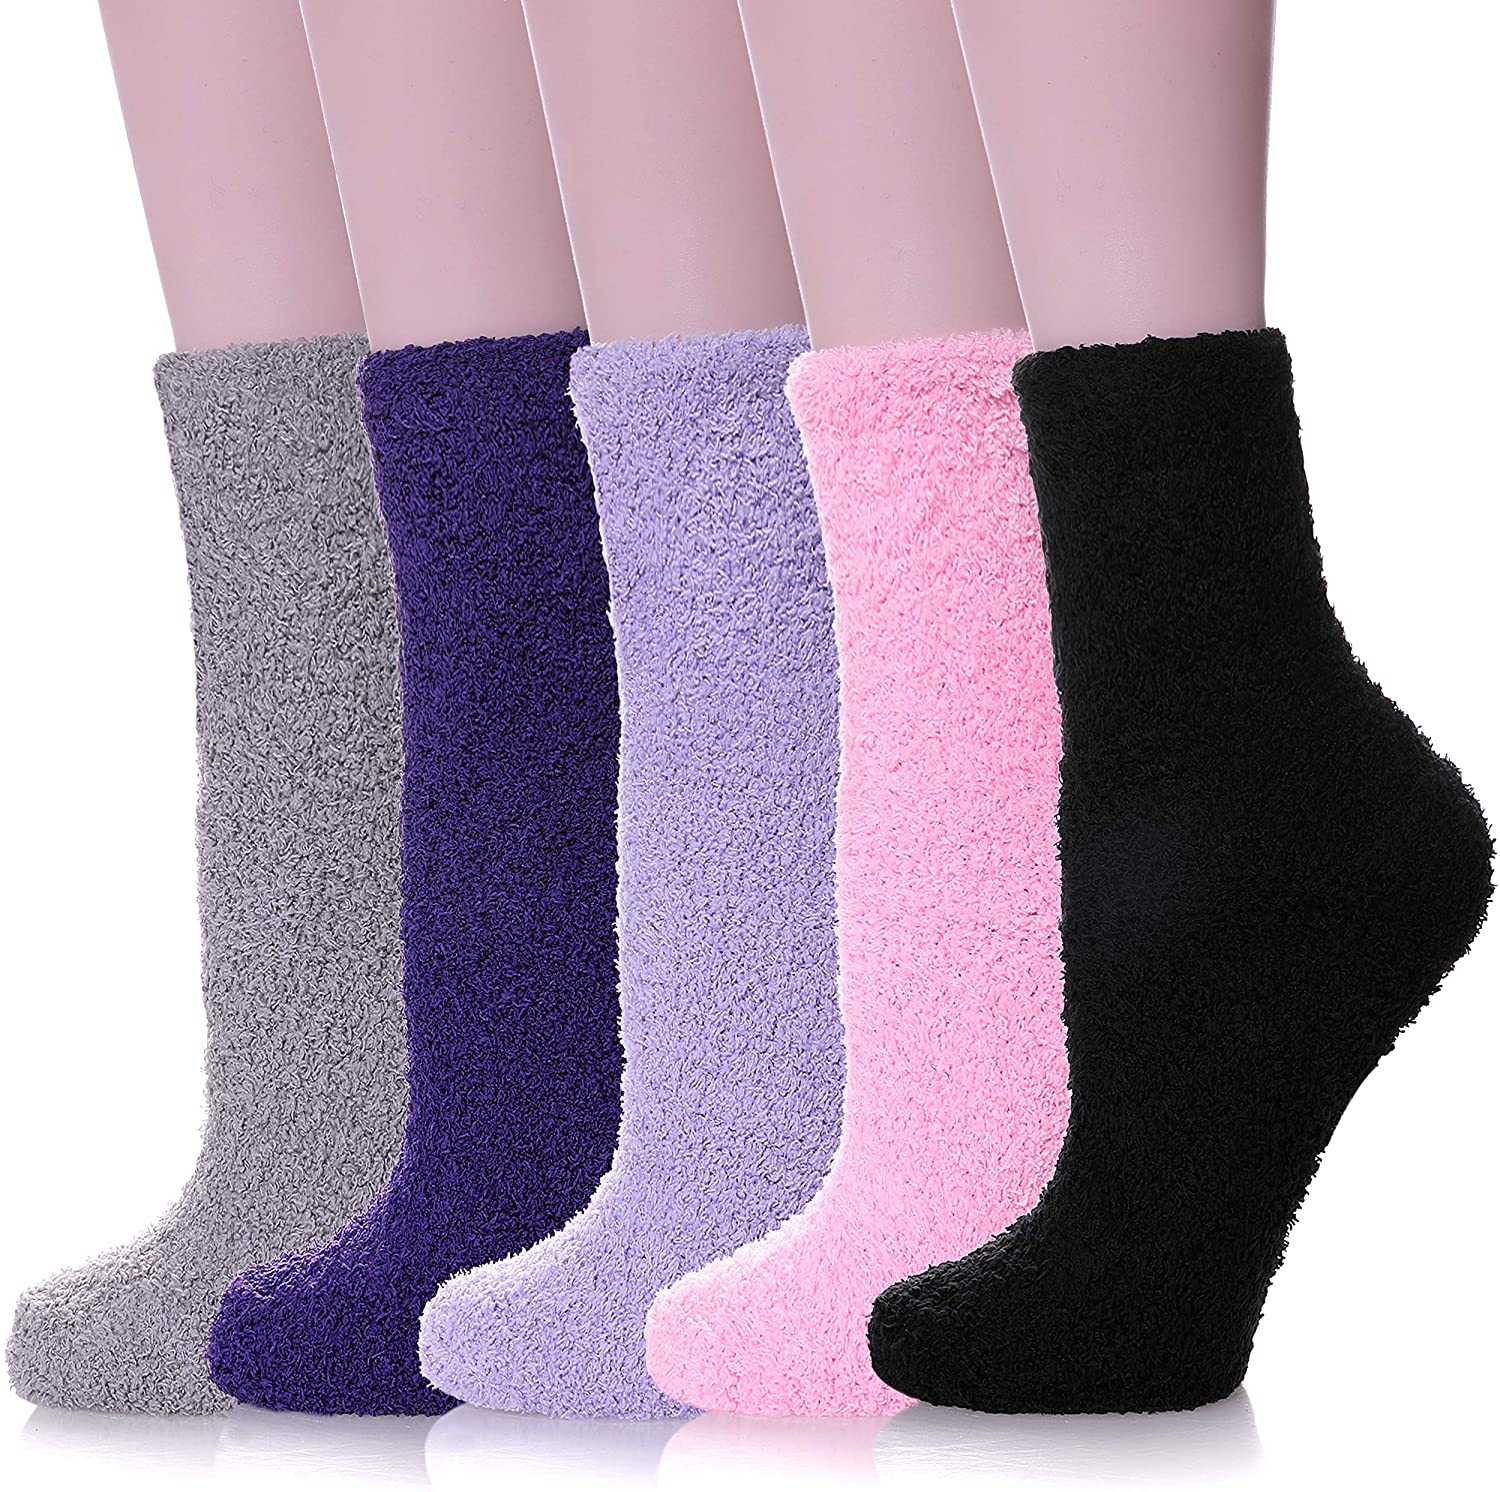 NOCIN COLOR Womens Fuzzy Slipper Socks Microfiber Soft Warm Cute Cozy Fluffy Winter Christmas Slipper Socks